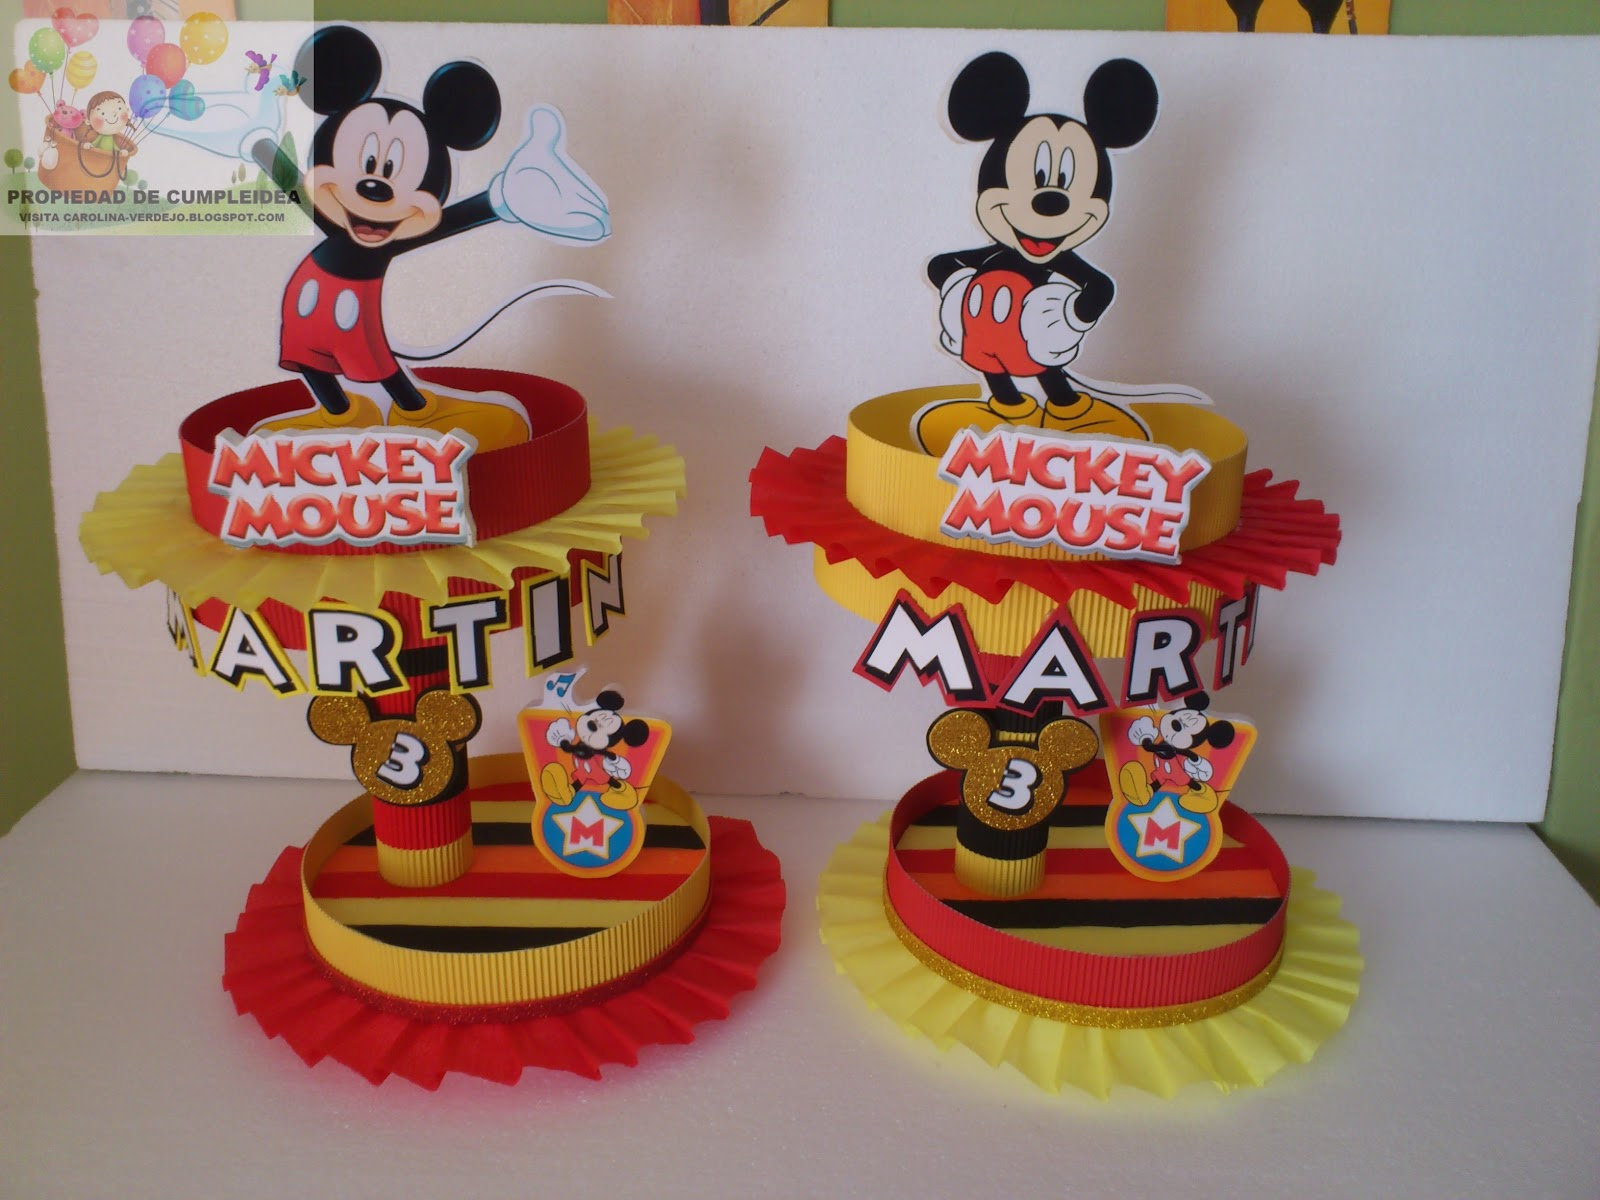 MICKEY MOUSE DULCERAS